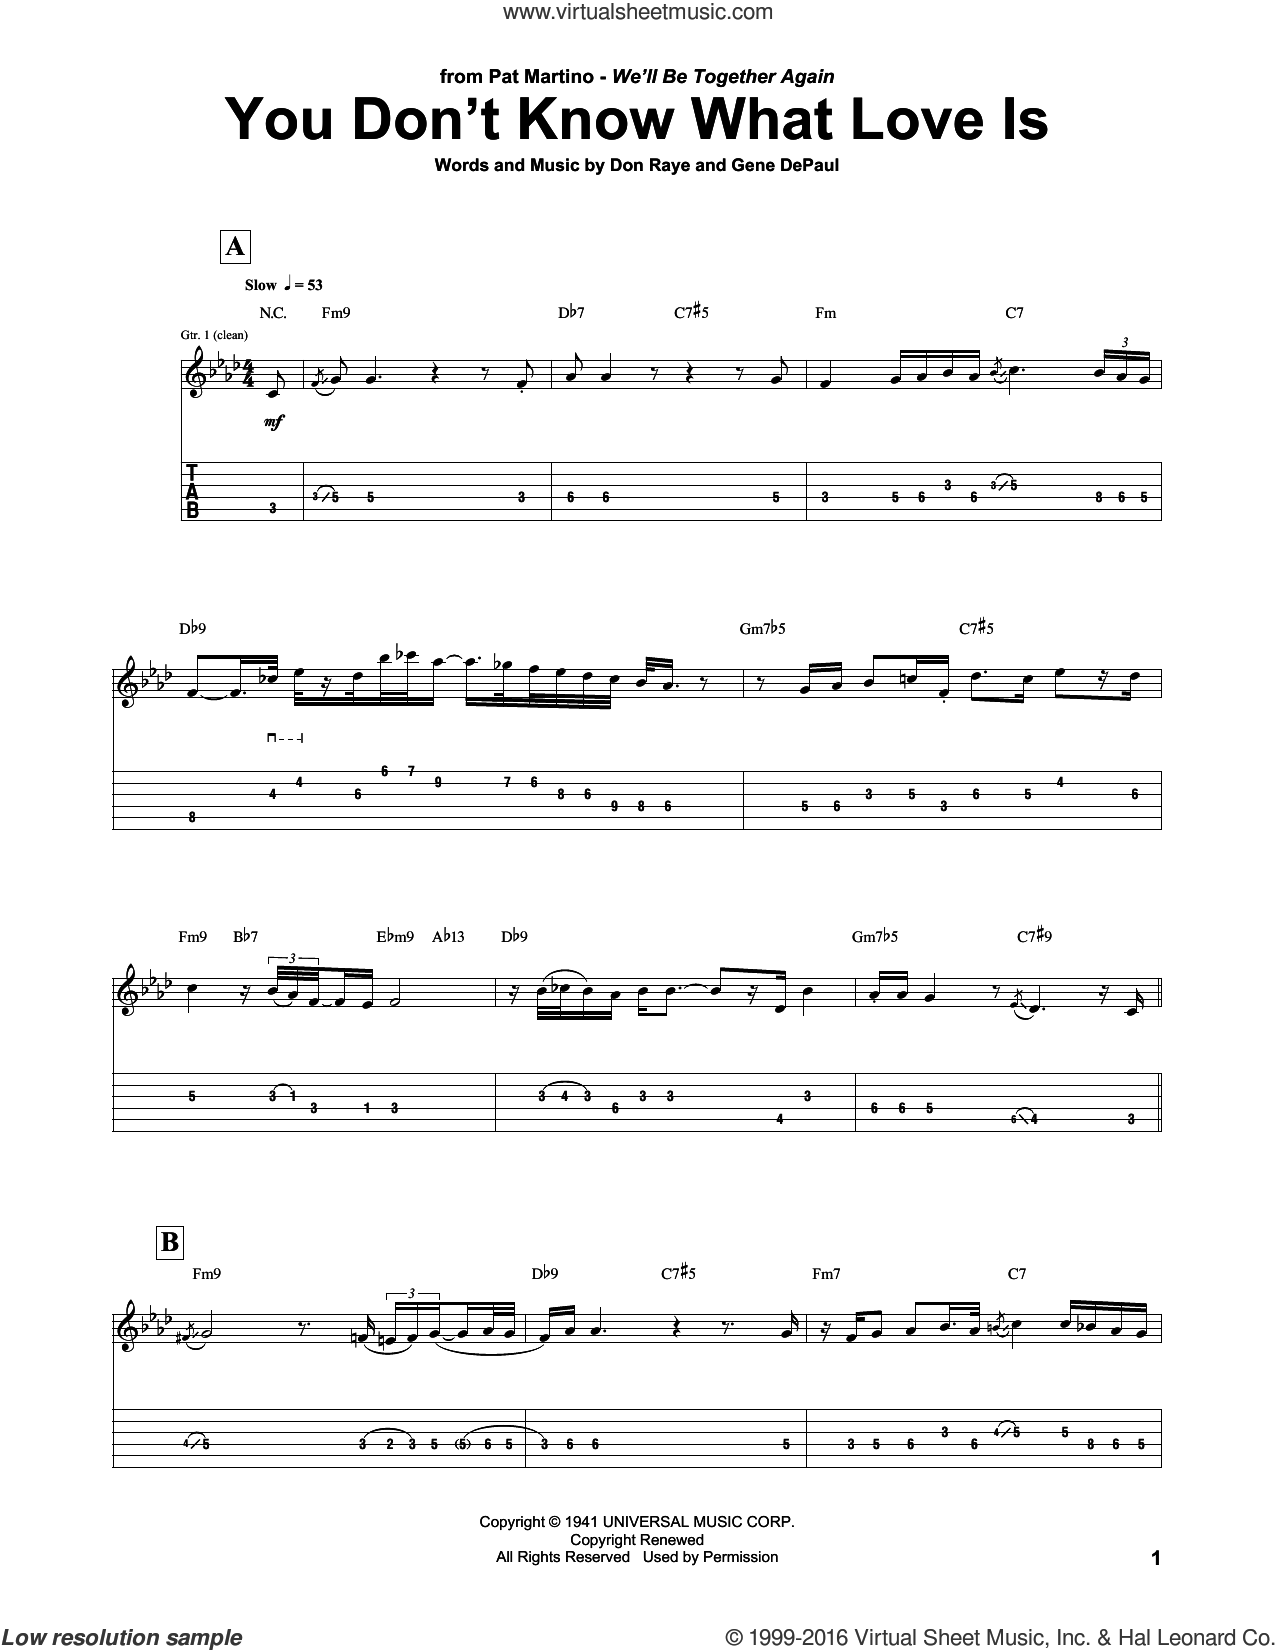 You Don't Know What Love Is sheet music for guitar (tablature) by Gene DePaul, Pat Martino and Don Raye. Score Image Preview.